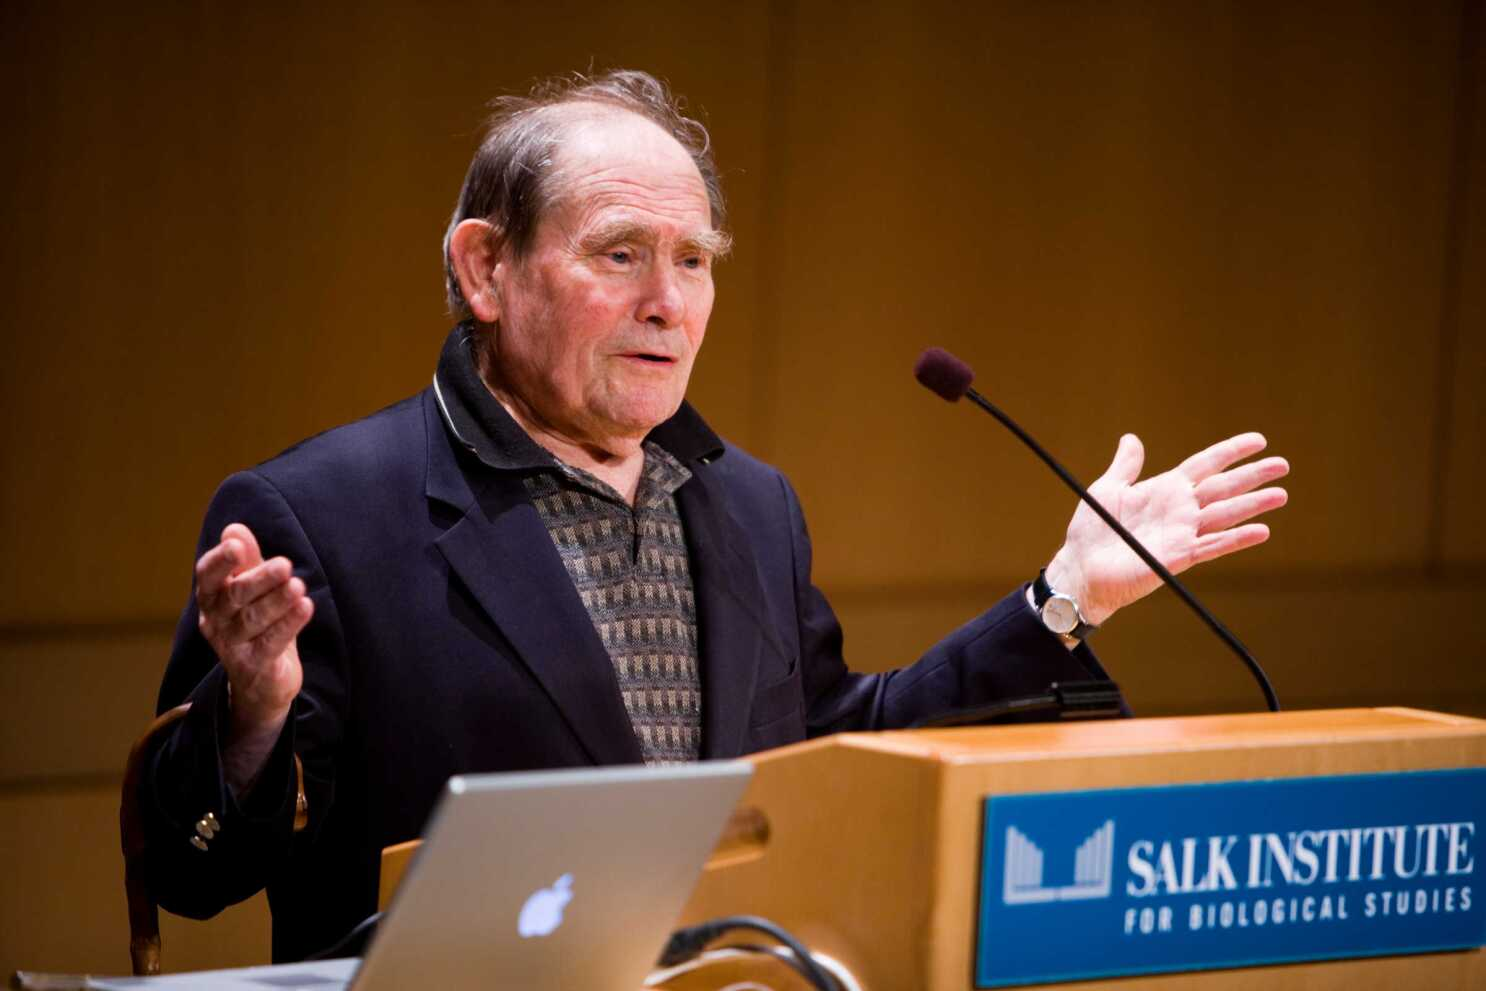 IMG SYDNEY BRENNER, South African Biologist and a 2002 Nobel Prize Laureate